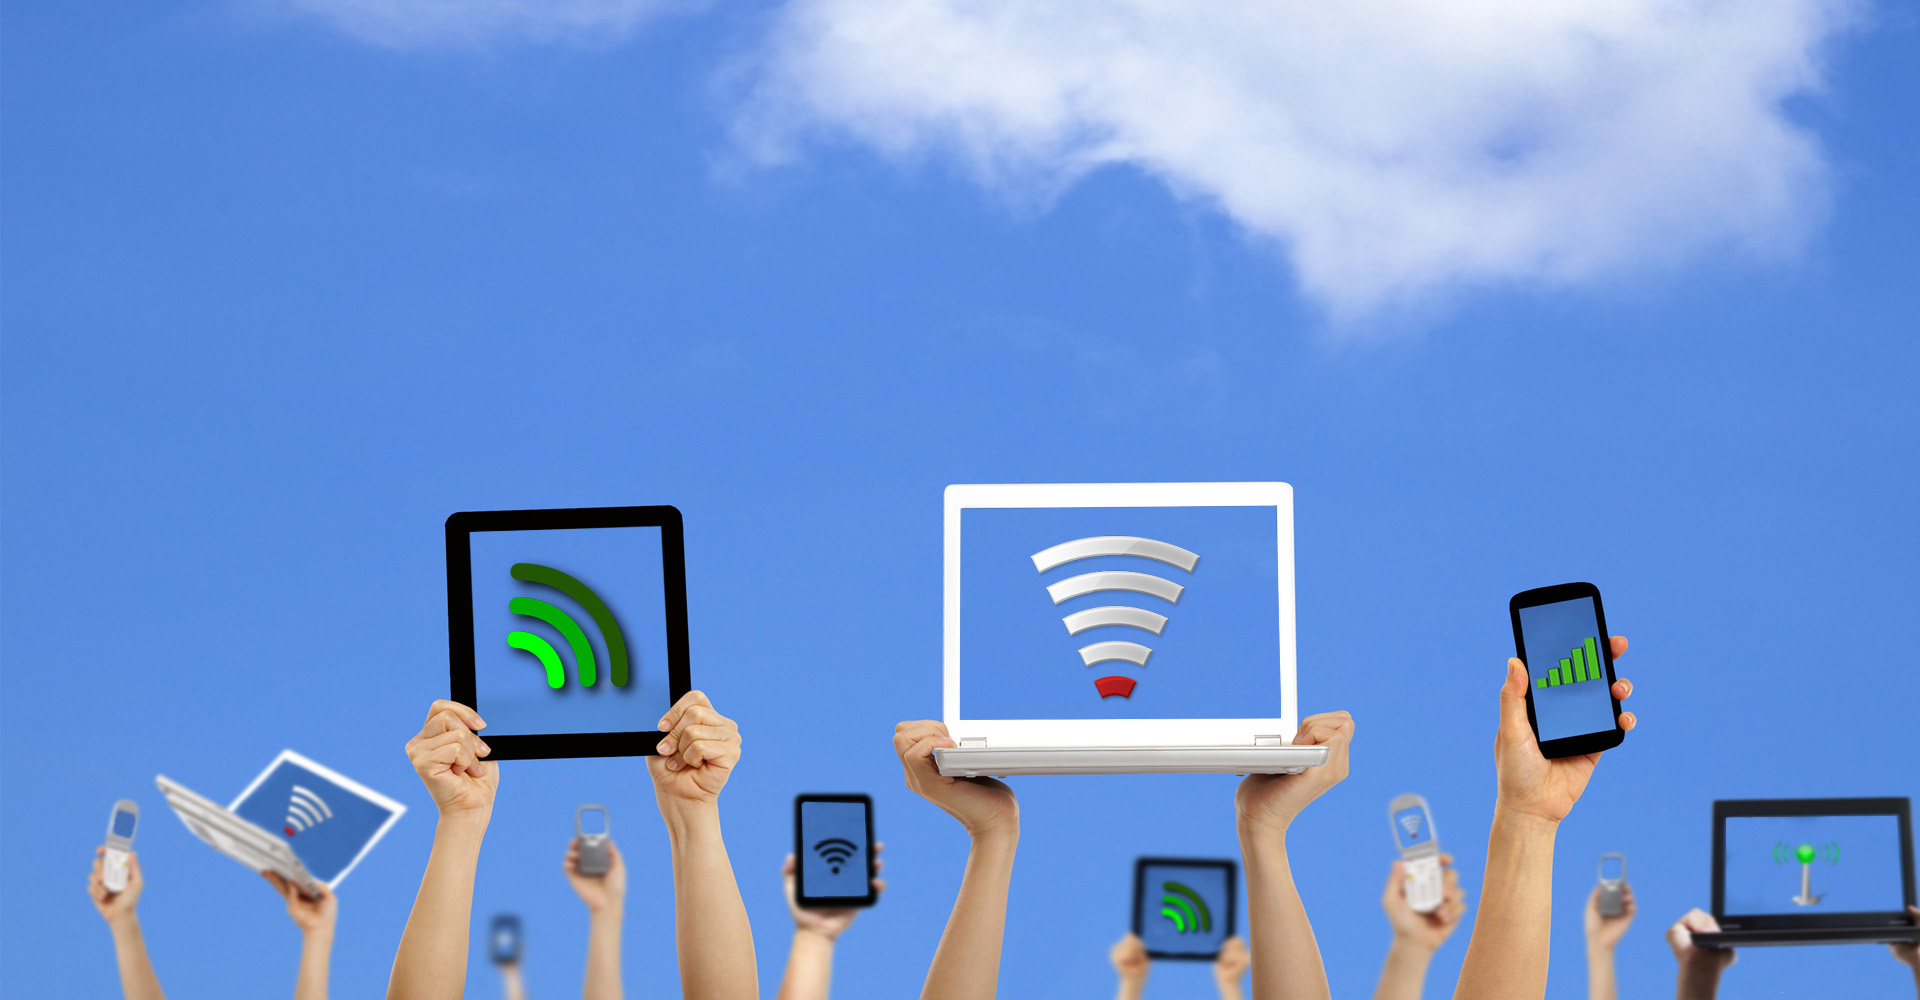 BYOD adds benefits and challenges.